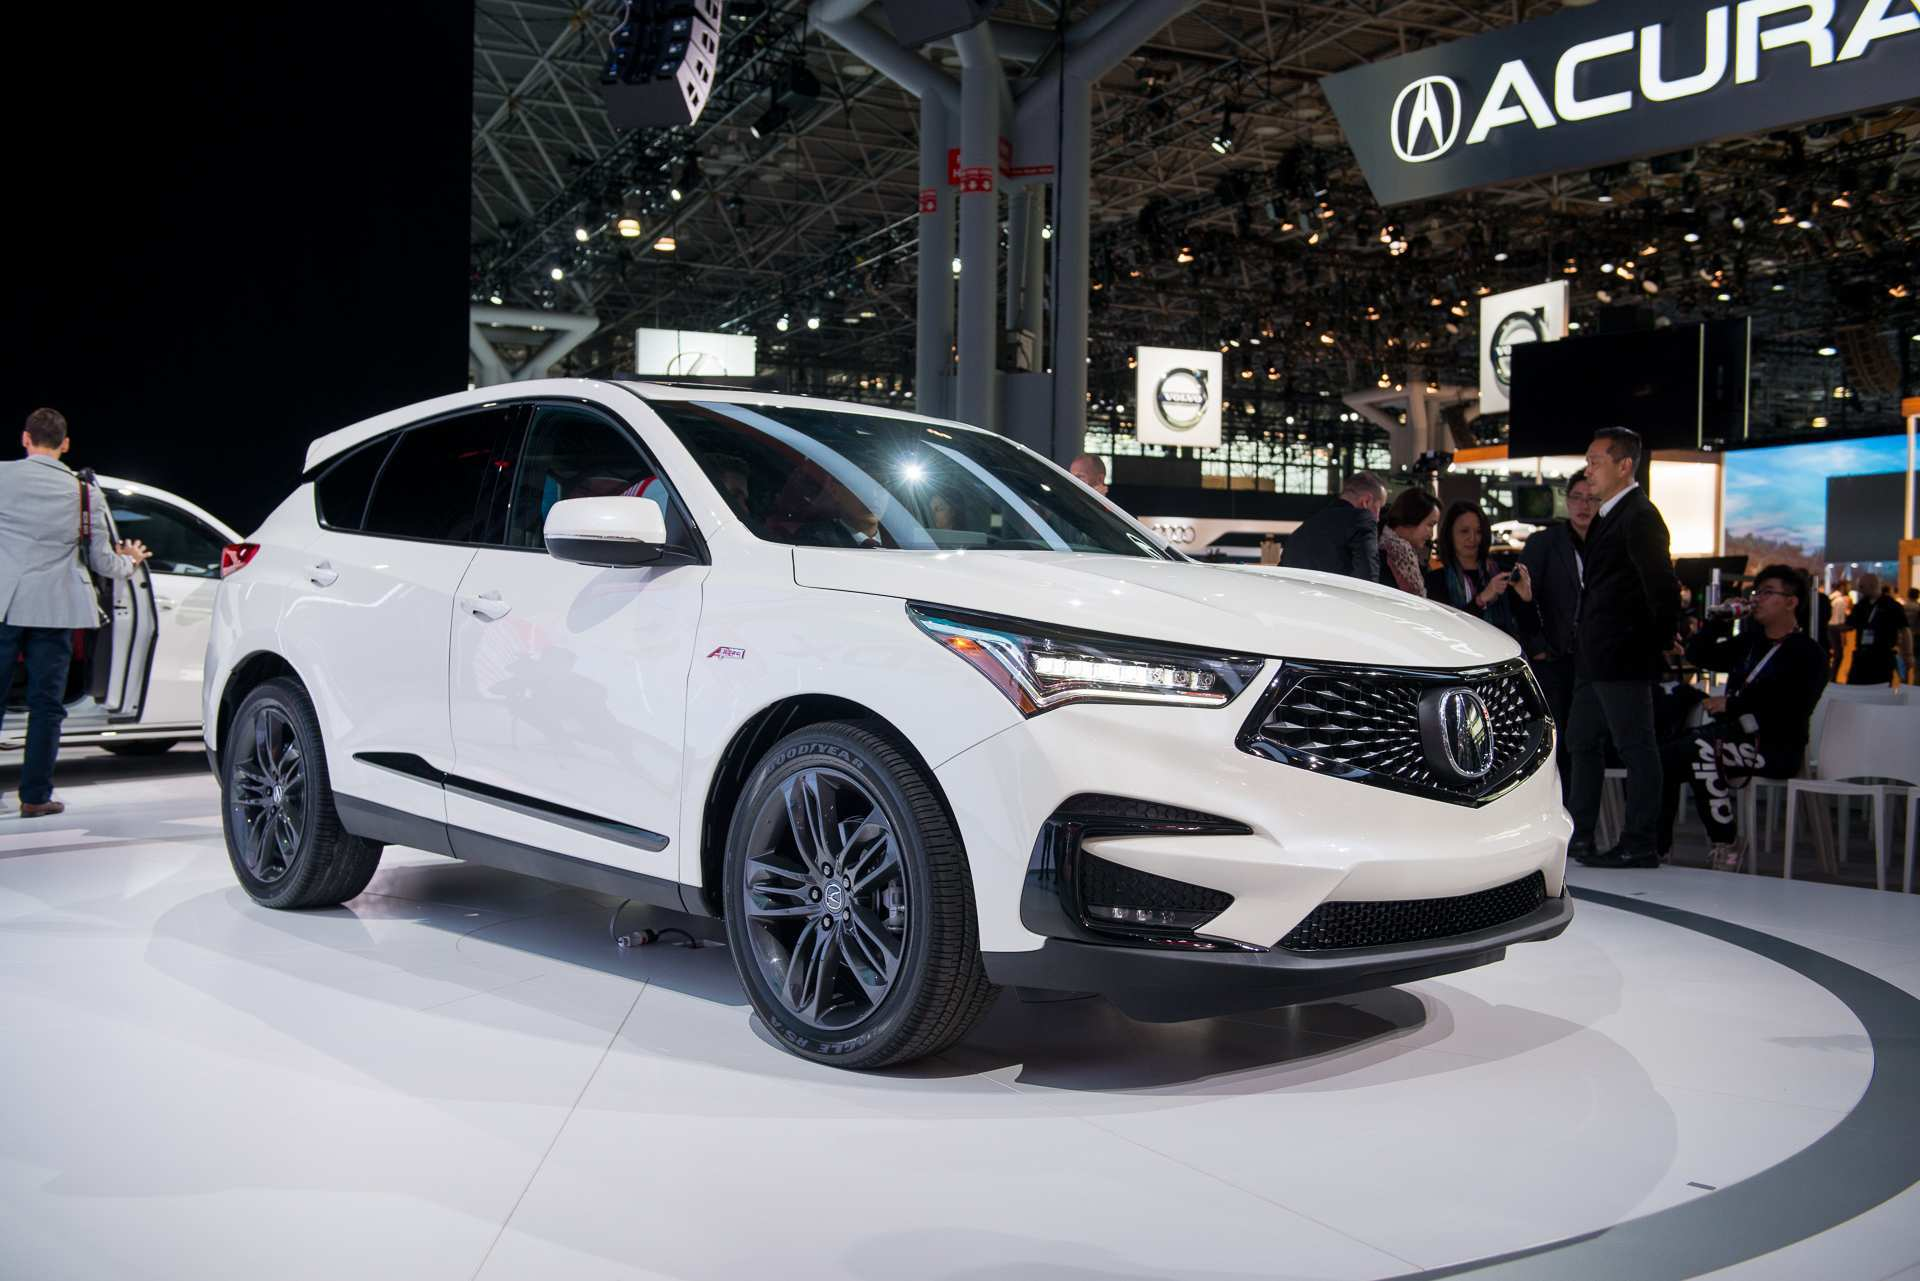 83 All New 2019 Acura Rdx Preview Price And Release Date